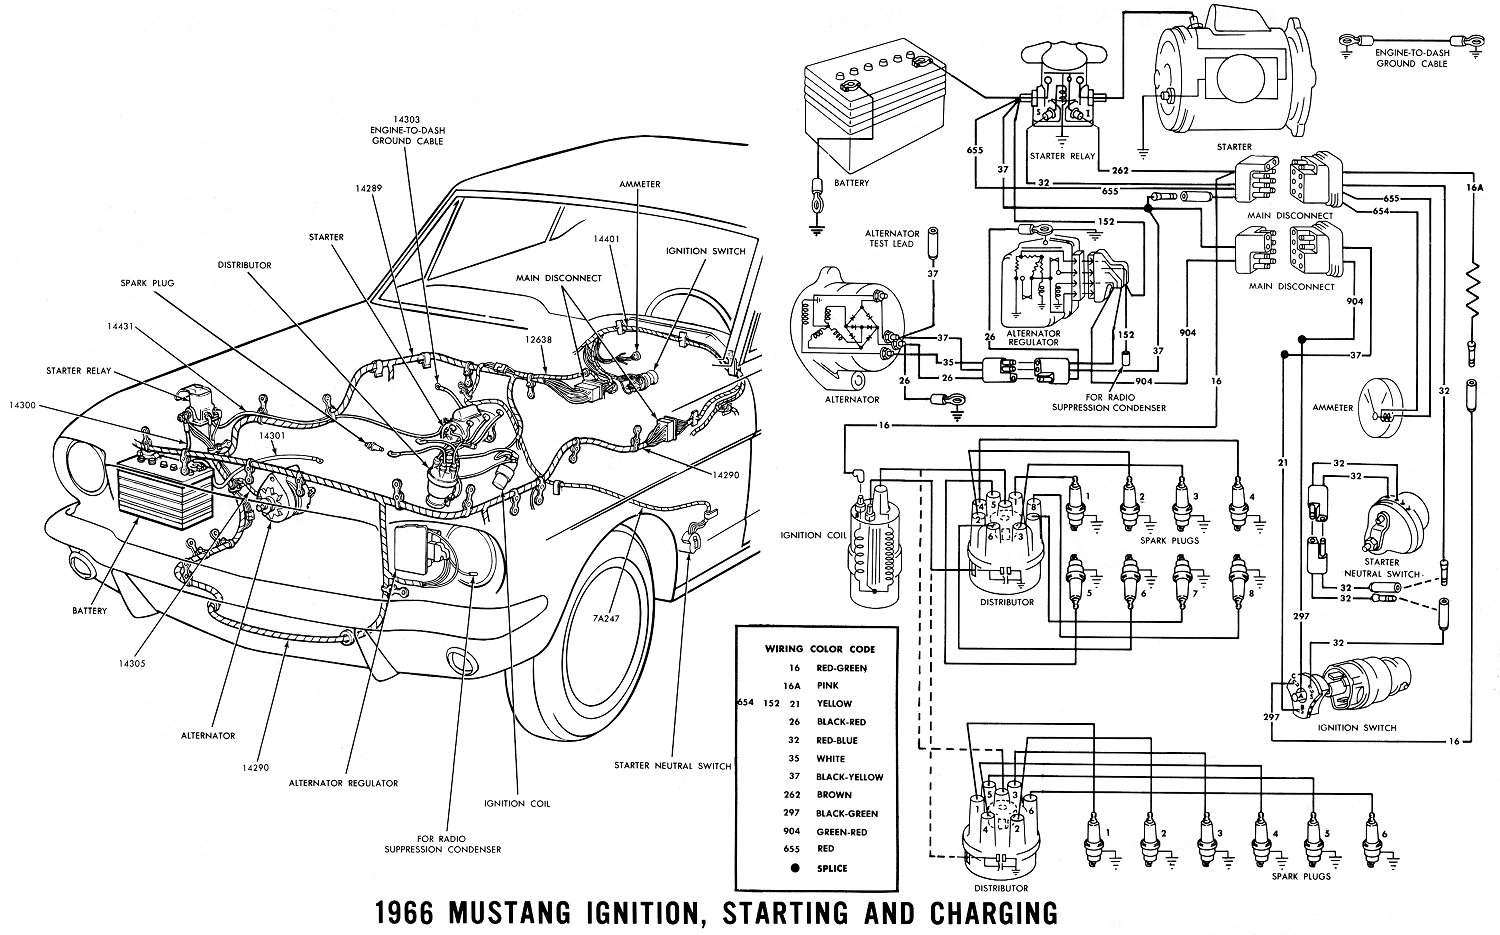 66ignit 1966 mustang wiring diagrams average joe restoration engine wiring diagram at bakdesigns.co